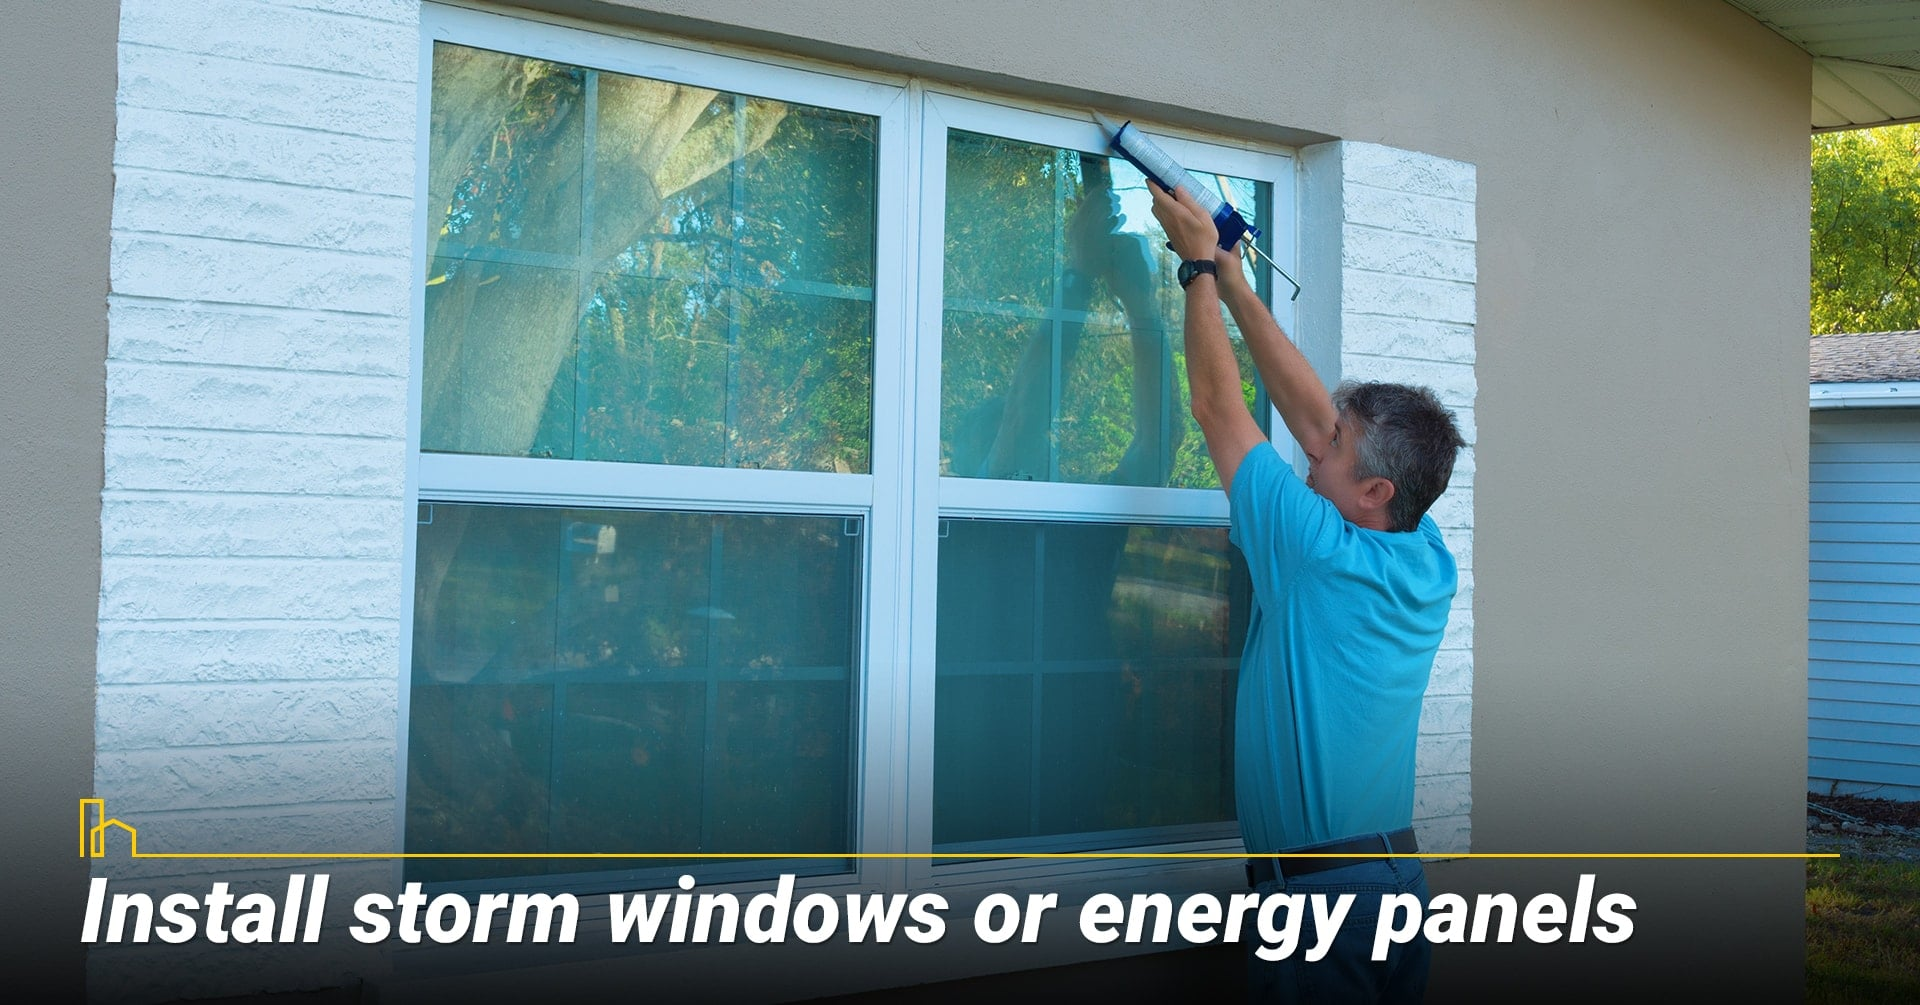 Install storm windows or energy panels, use an extra layer